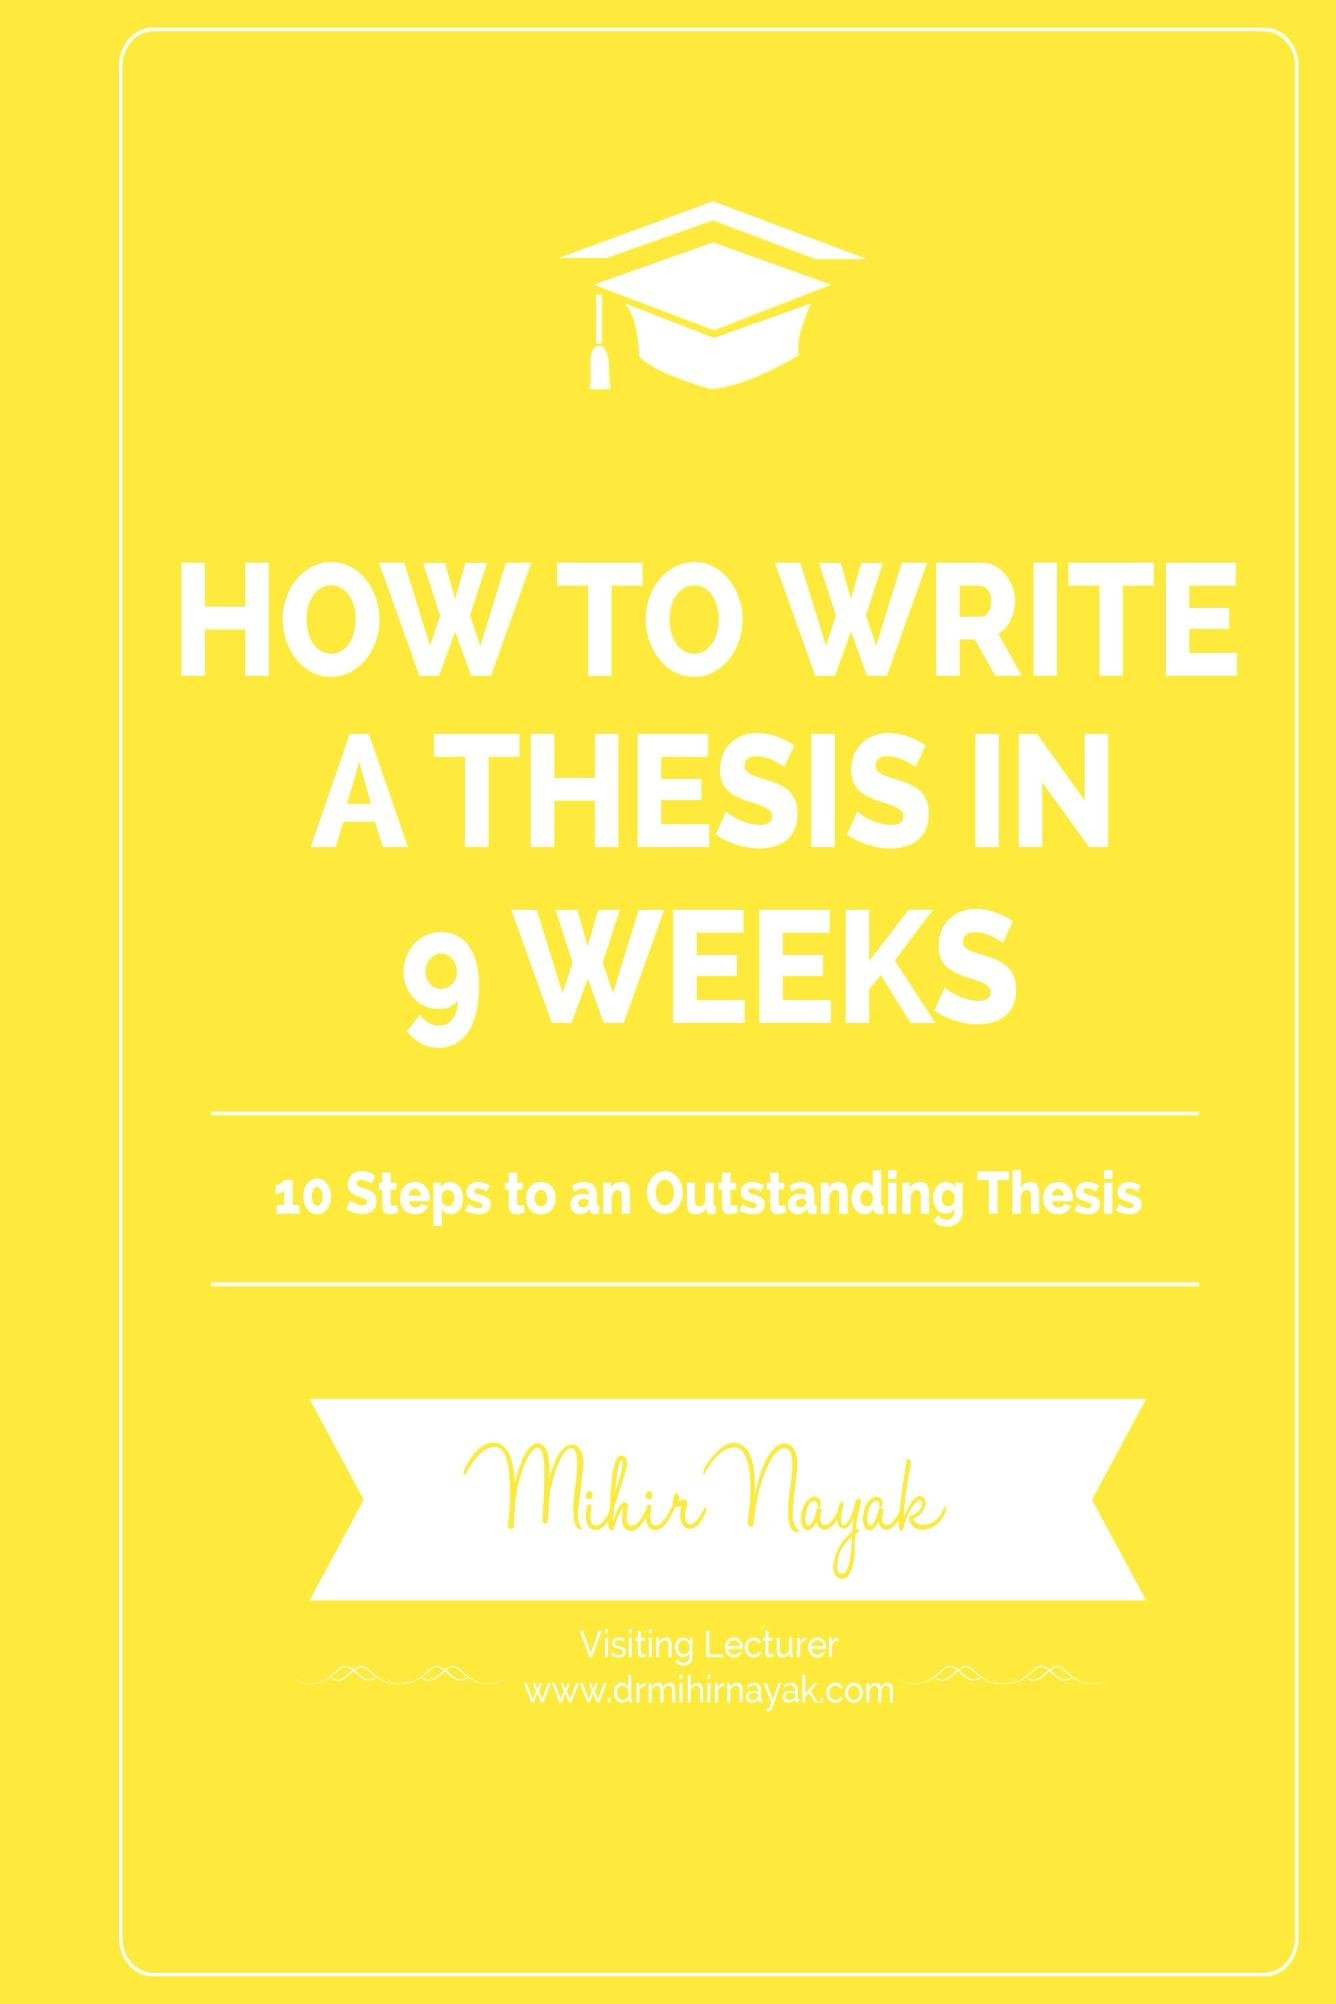 How to Write a Thesis in 9 Weeks: 10 Steps to an Outstanding Thesis (English Edition)